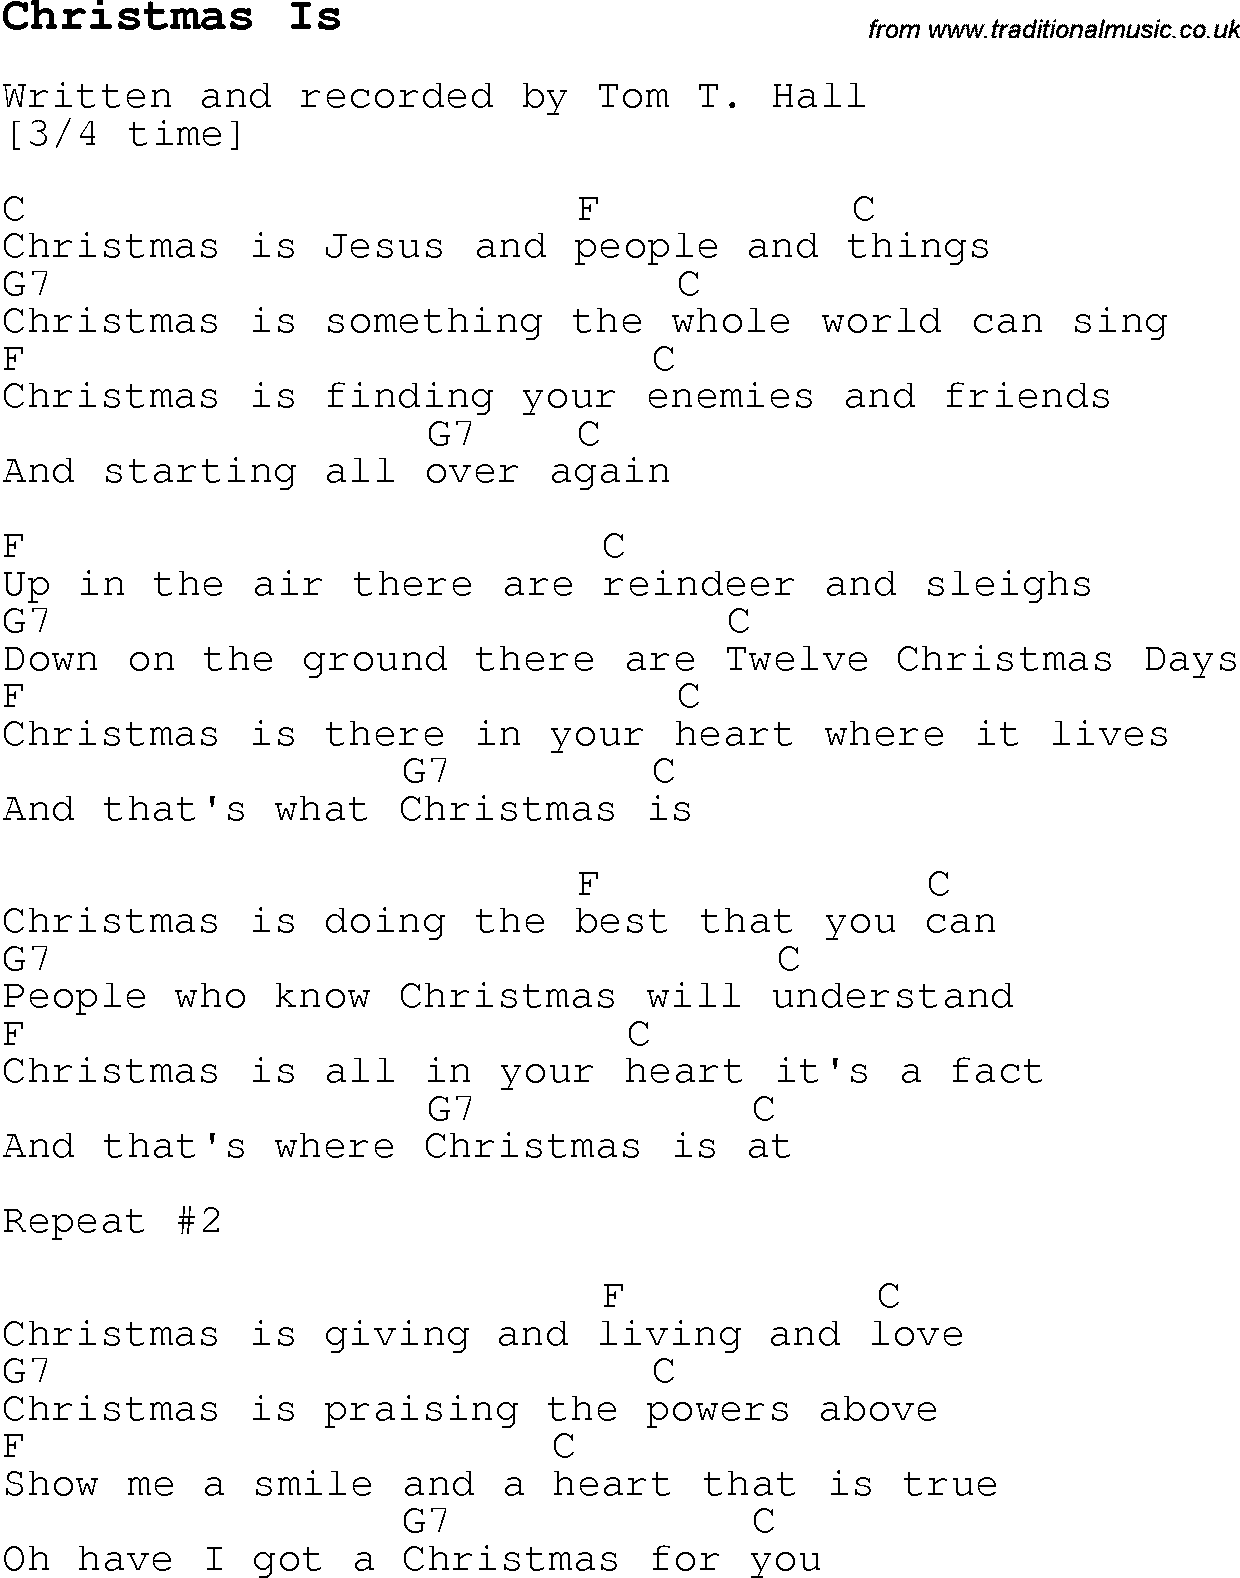 Christmas carolsong lyrics with chords for christmas is christmas songs and carols lyrics with chords for guitar banjo for christmas is hexwebz Choice Image